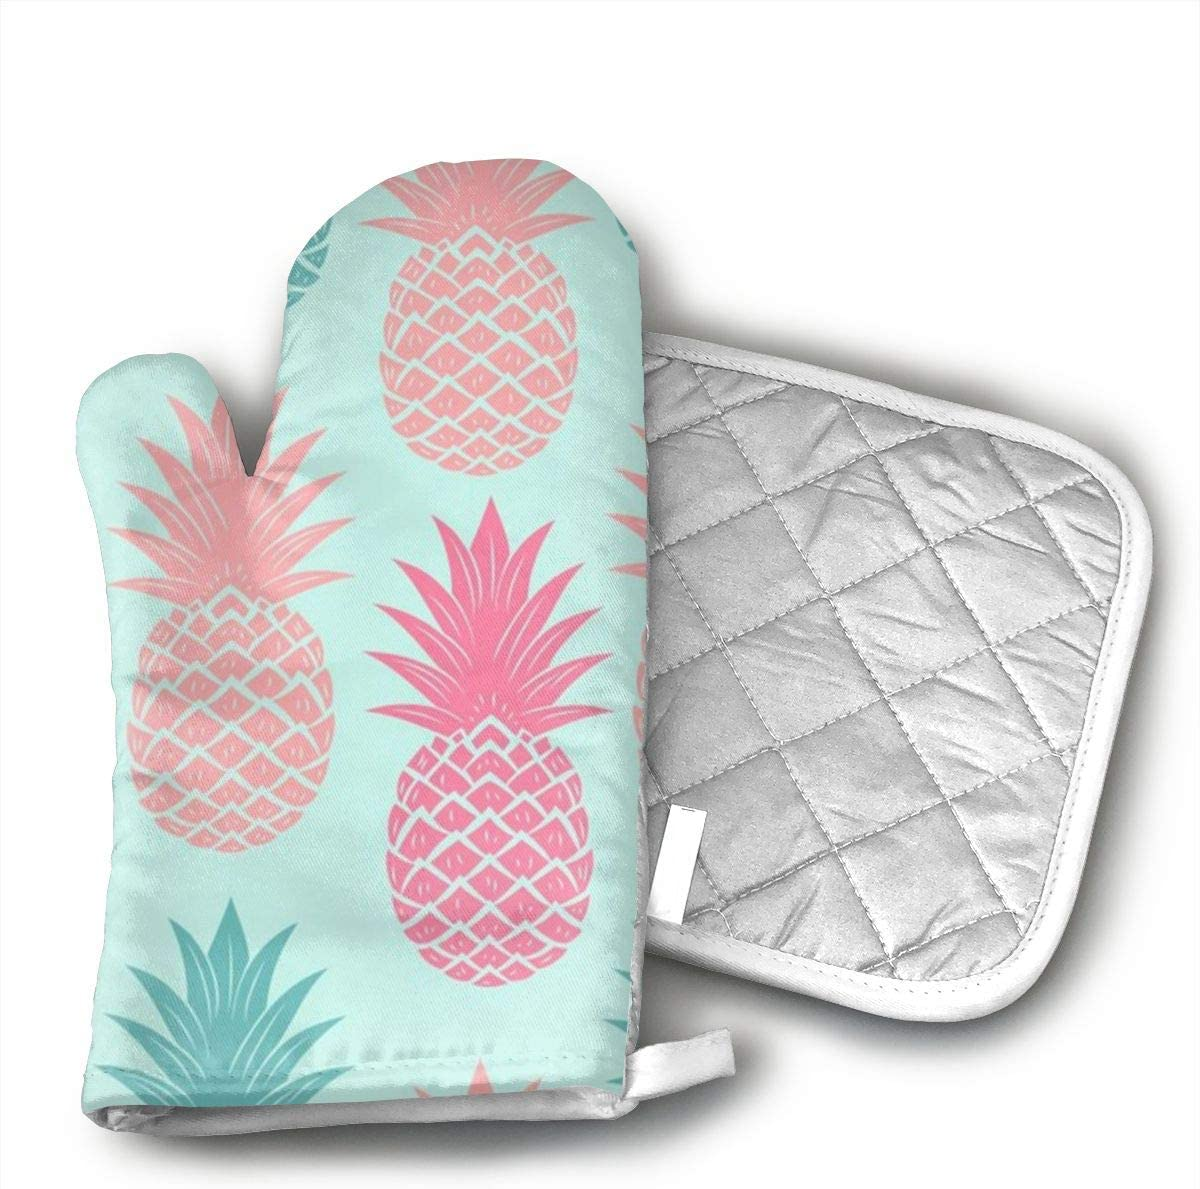 Wiqo9 Colored Pineapples Oven Mitts and Pot Holders Kitchen Mitten Cooking Gloves,Cooking, Baking, BBQ.